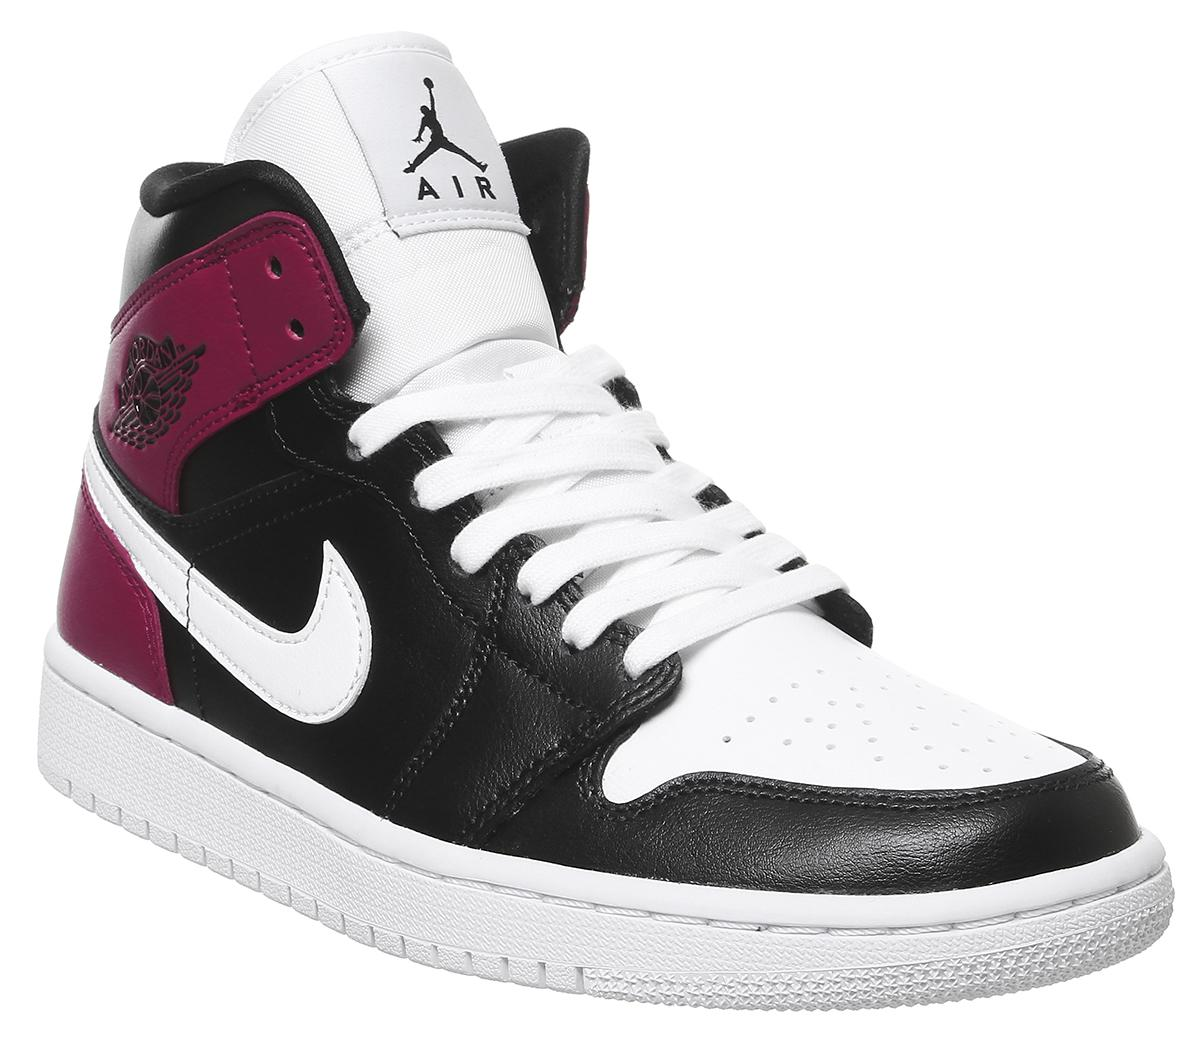 Air Jordan 1 Mid Trainers